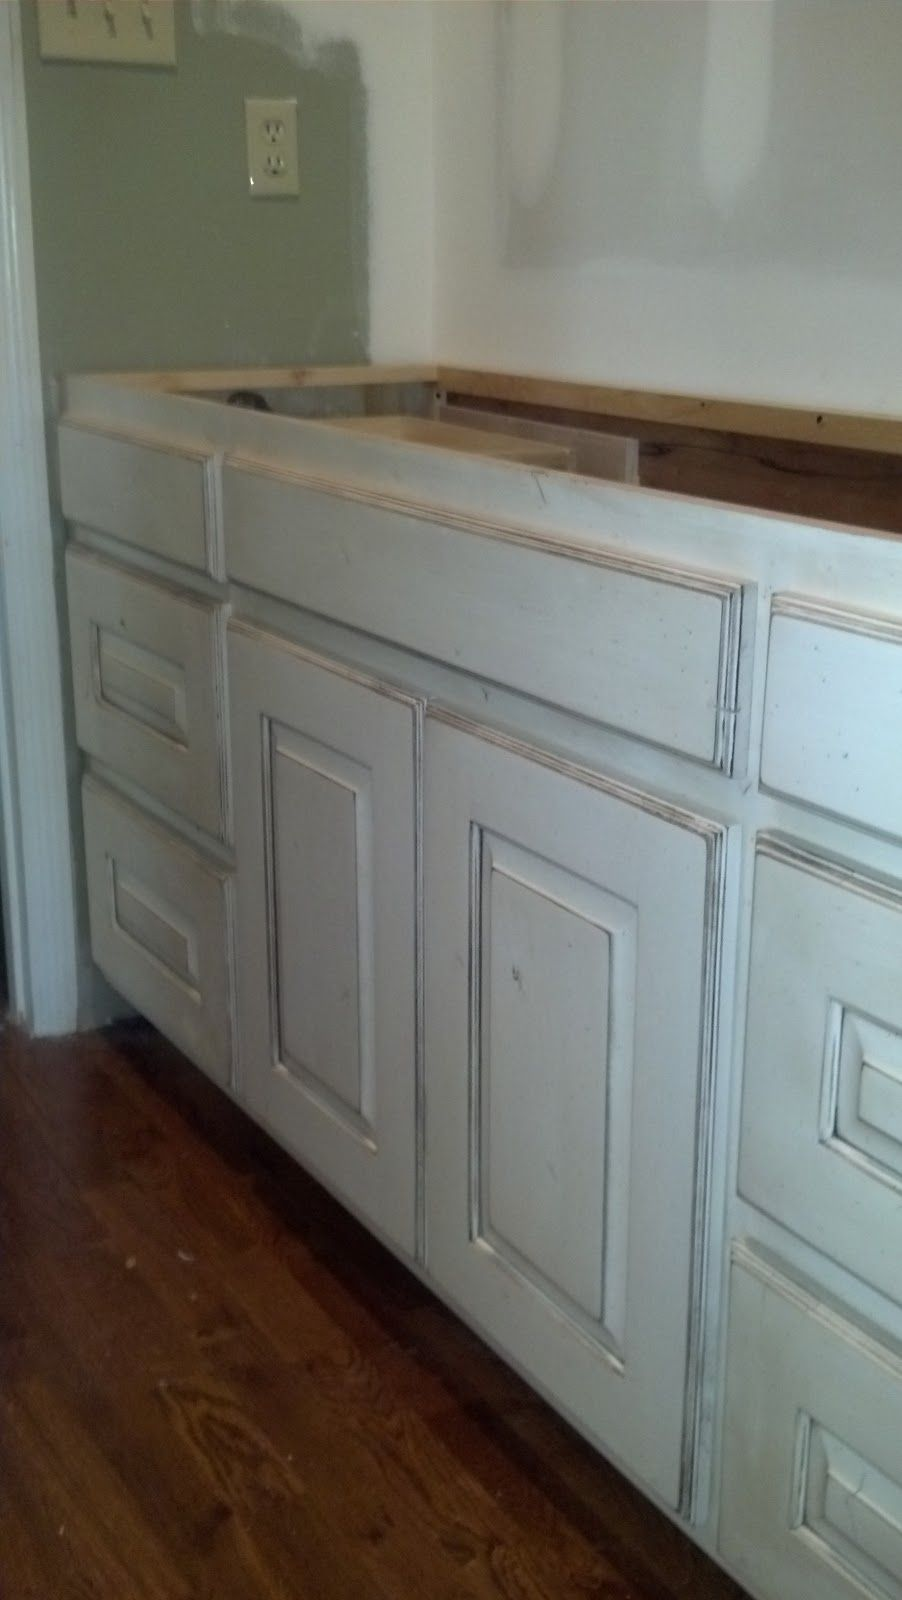 adkisson s cabinets white painted and distressed knotty alder rh pinterest com